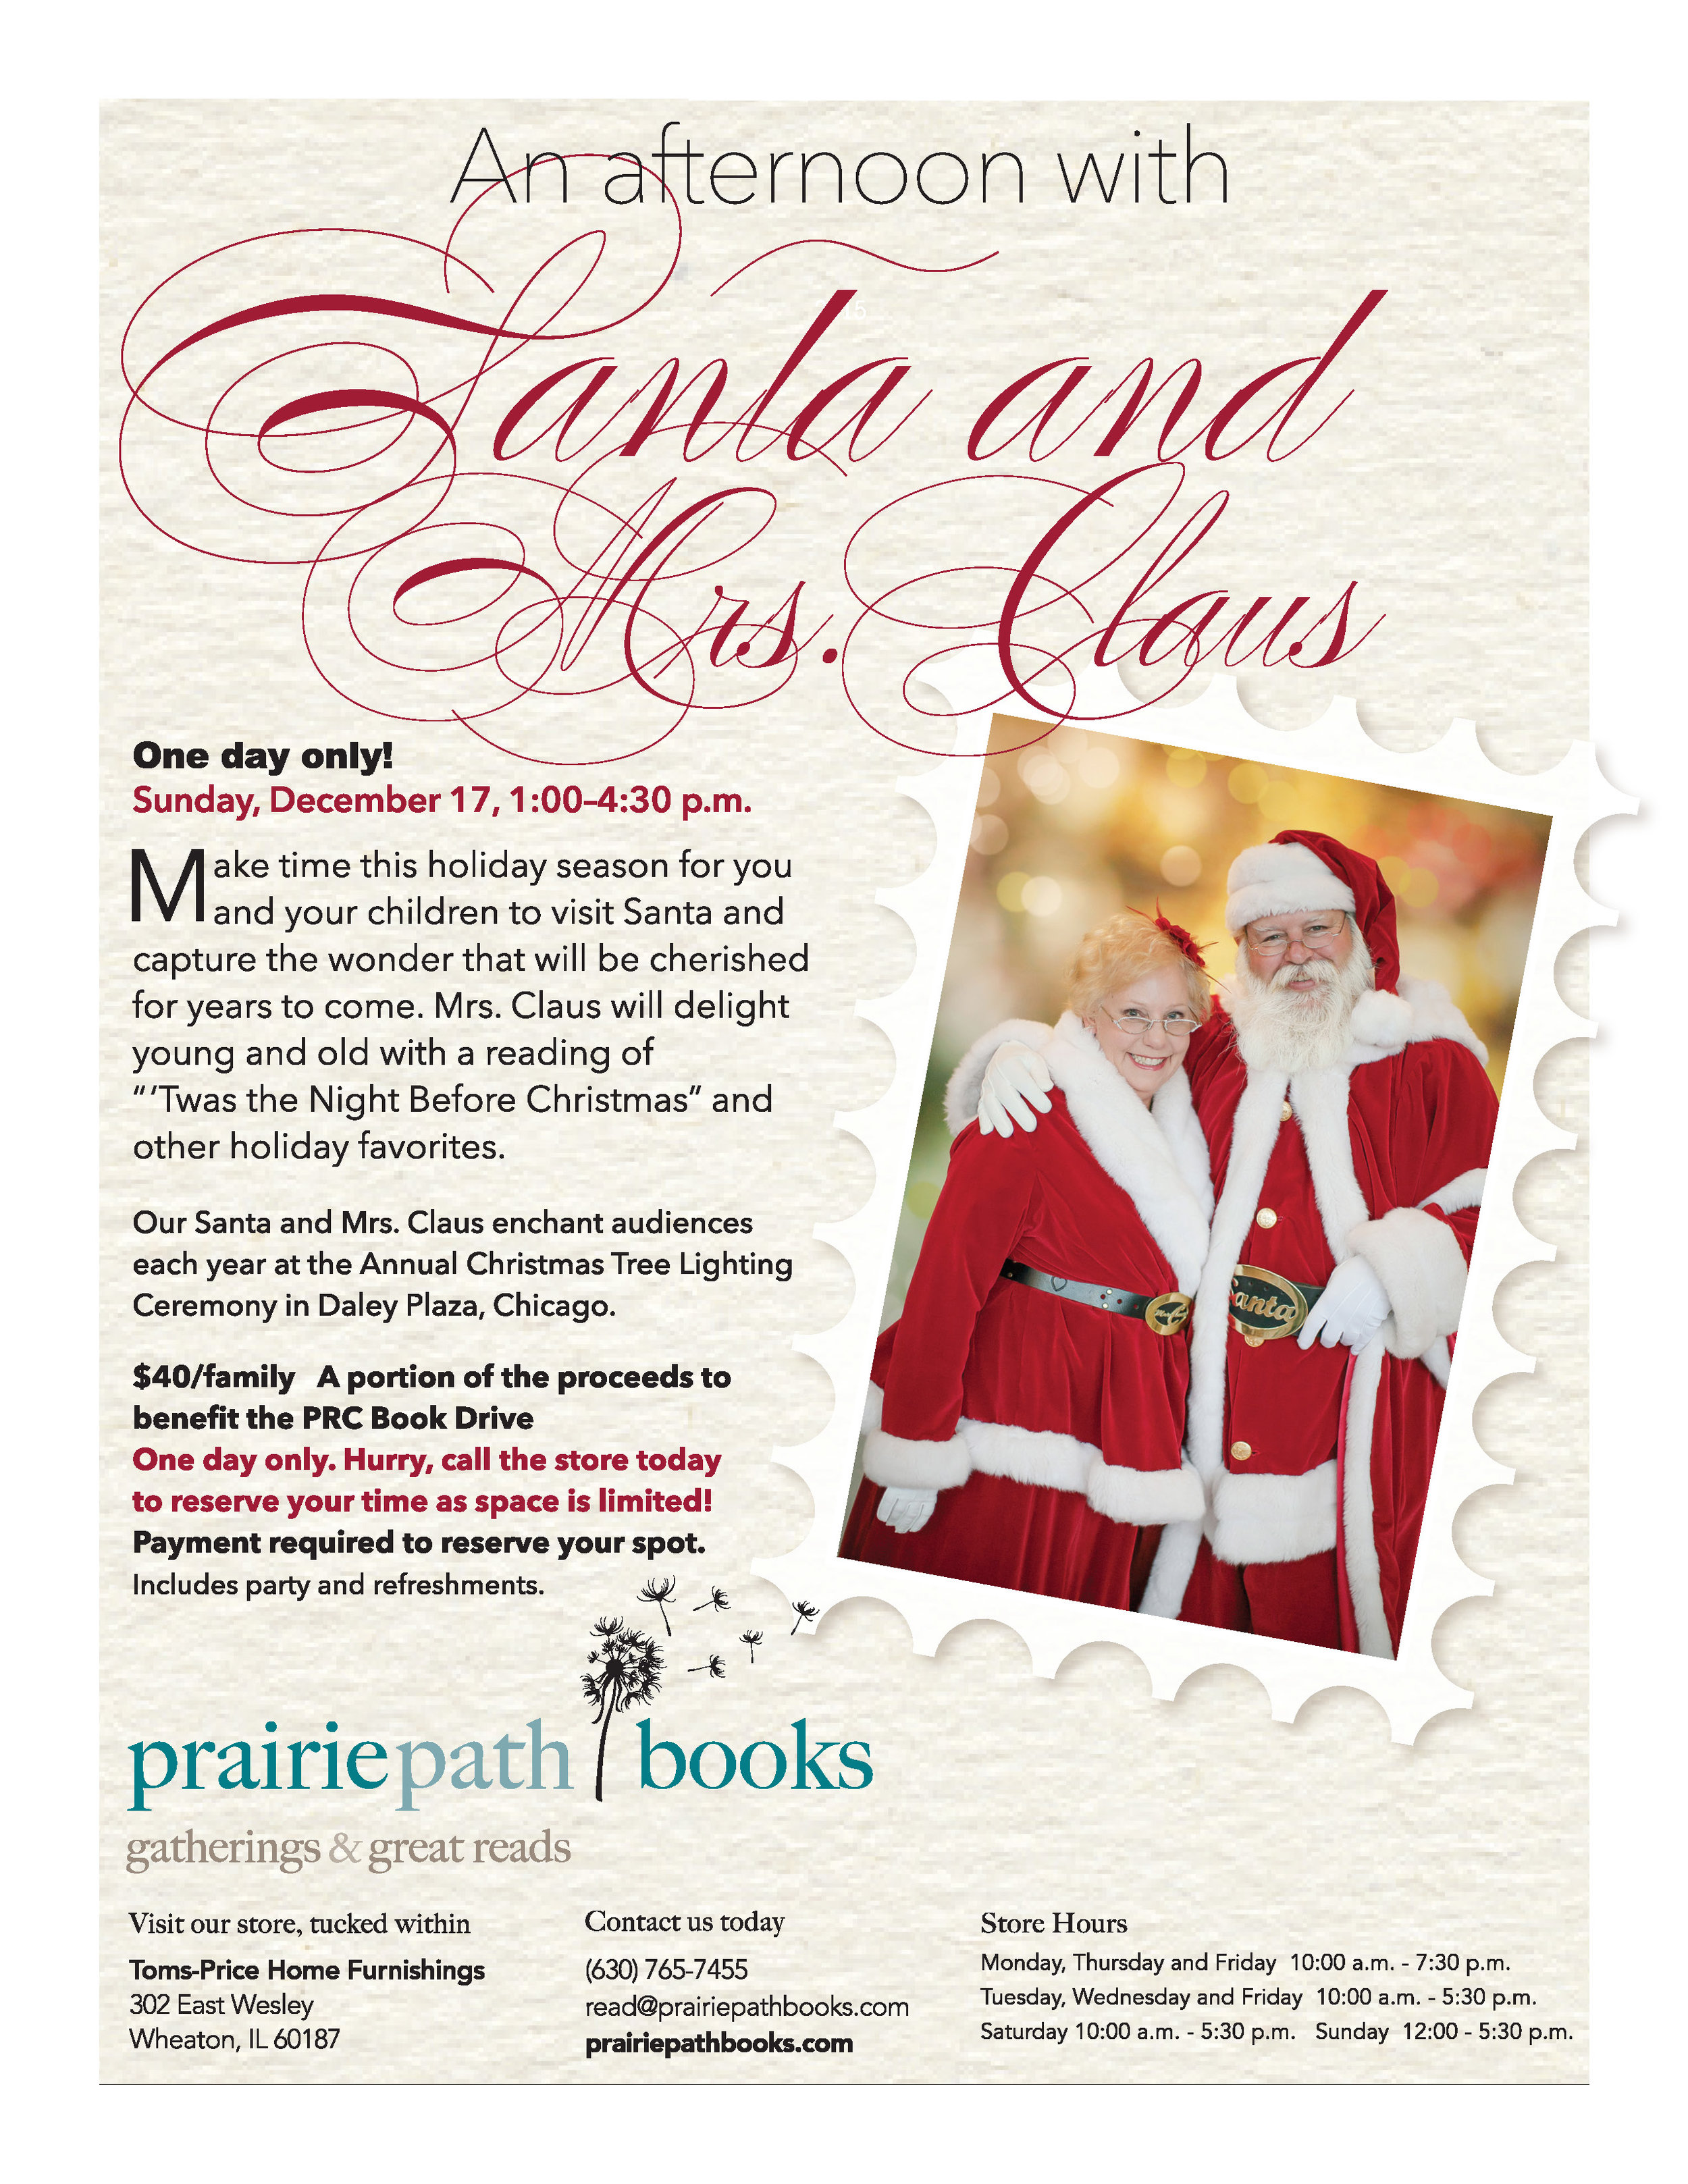 Santa and Mrs. Claus – One day only!  Sunday, December 17, 1:00–4:30 p.m.  Call the store to reserve your spot, (630) 765-7455